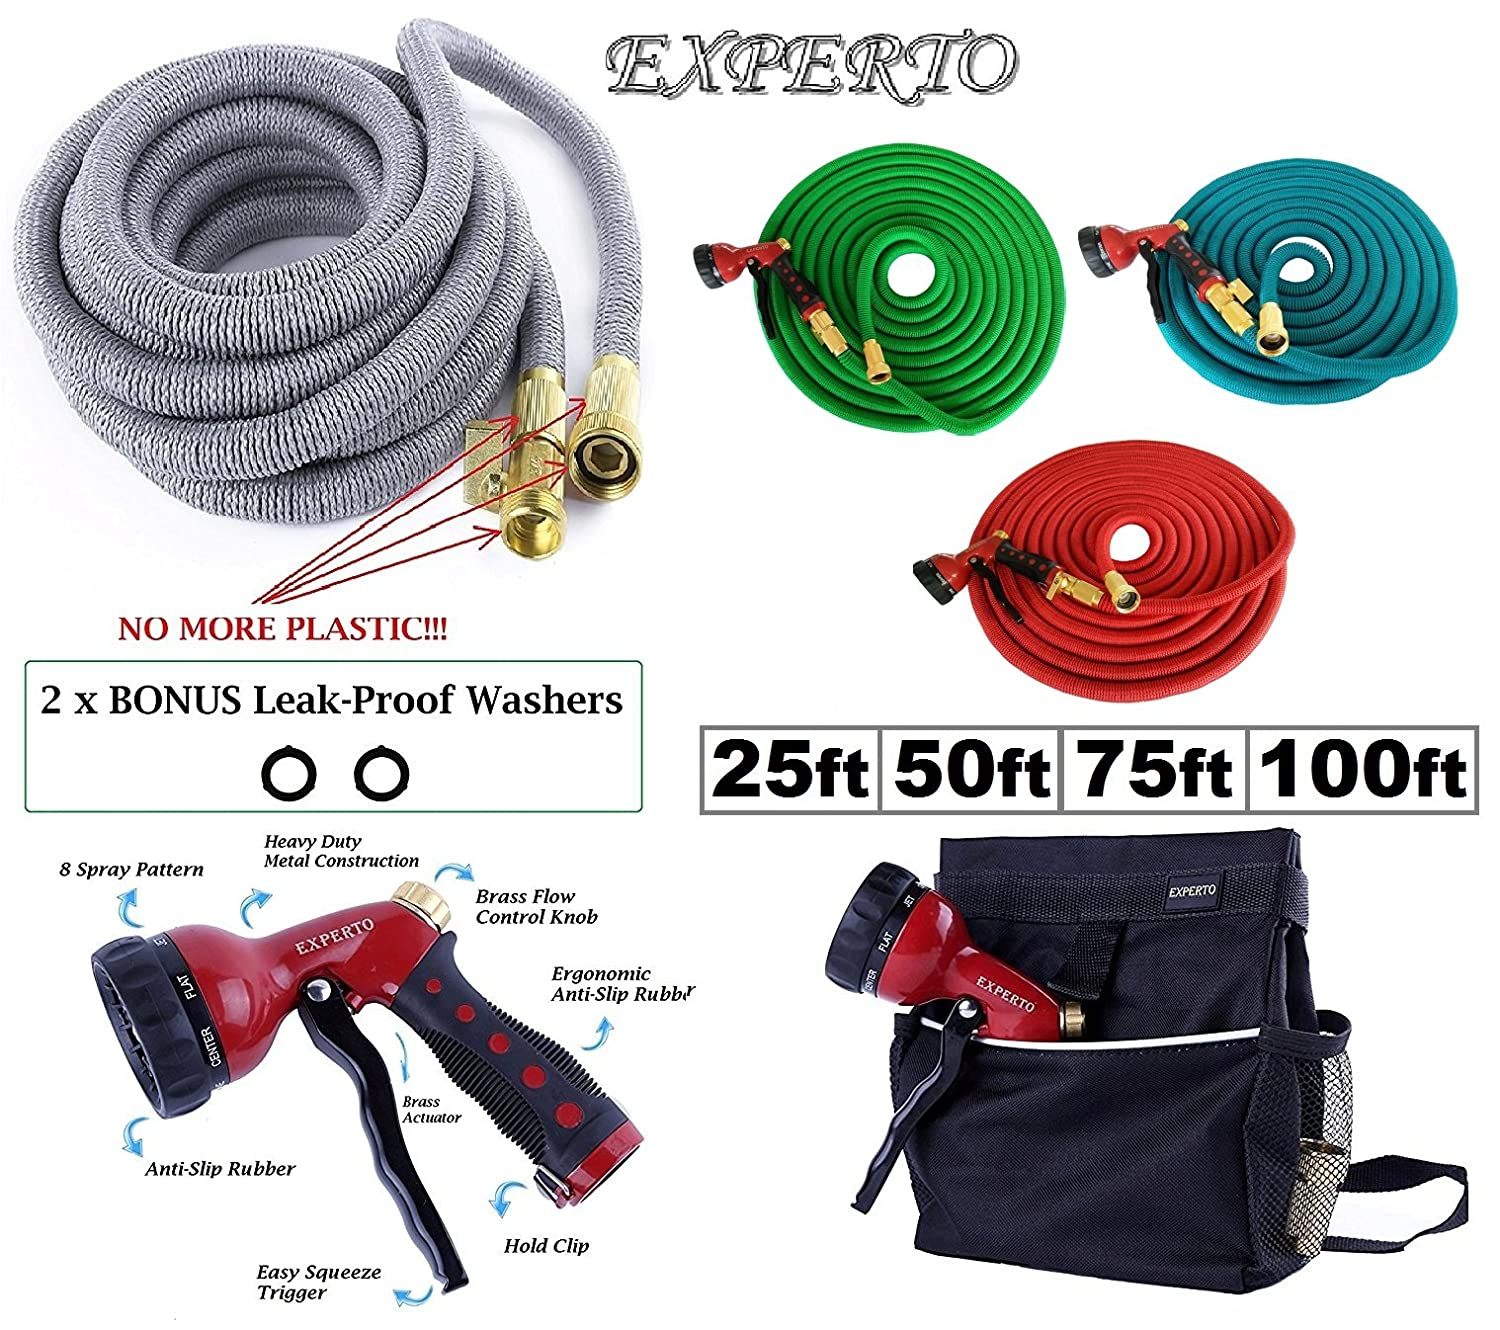 (100ft, Silver) EXPERTO Expandable Garden Hose 3 in 1 KIT 25ft, 50ft, 75ft, 100ft, Silver, Red, Blue, Green - Expanding Hose + Heavy Duty 8 Pattern Metal Watering Nozzle + Hose Storage Bag